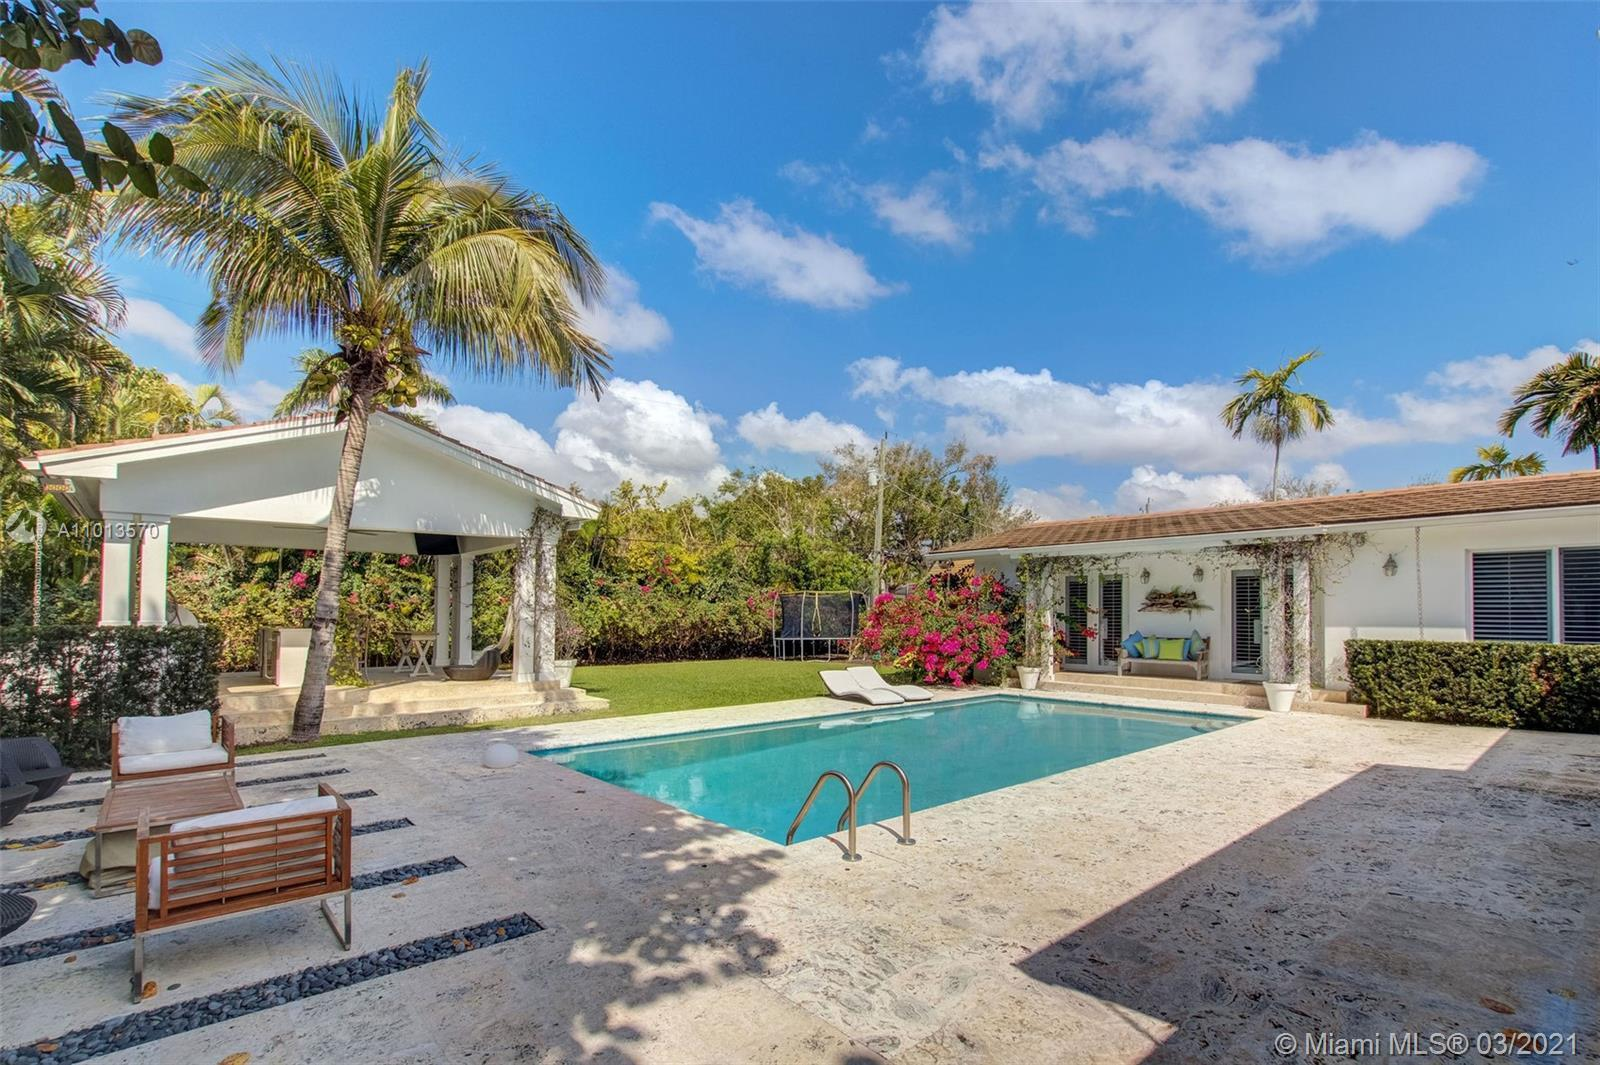 Plantation style home with huge spaces. All 5 bedrooms have en suite bathrooms. Gorgeous backyard wi